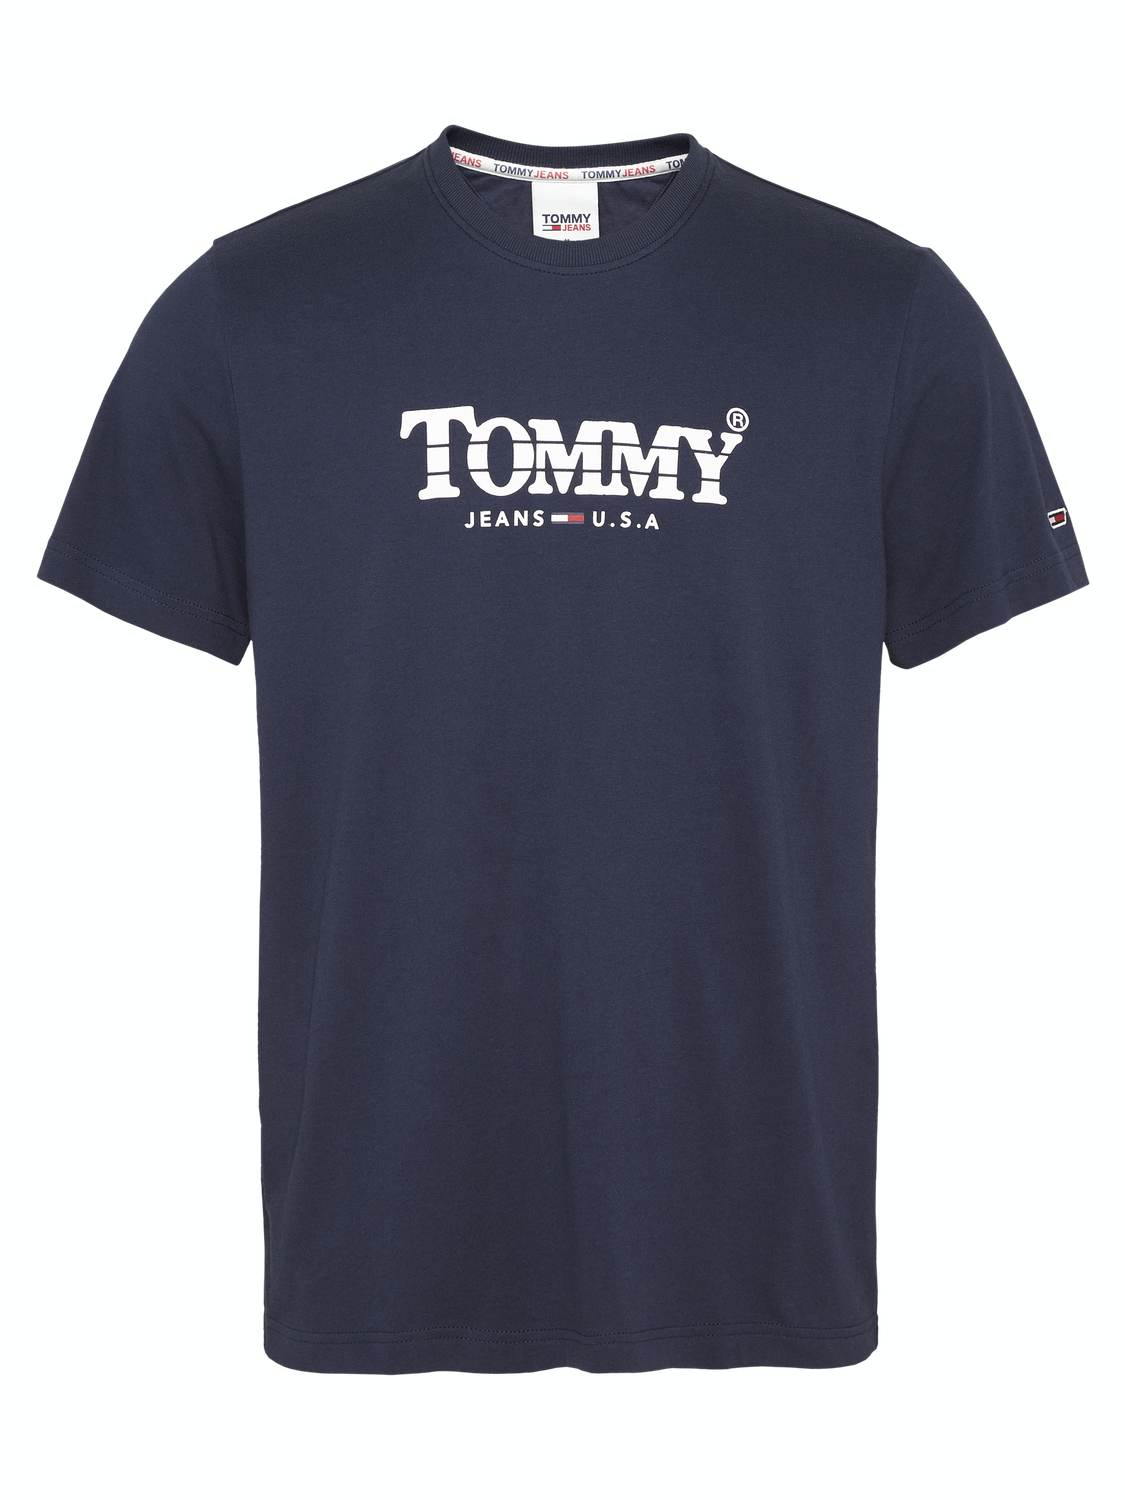 TJM GRADIENT T-SHIRT - NAVY | GATE 36 Hobro